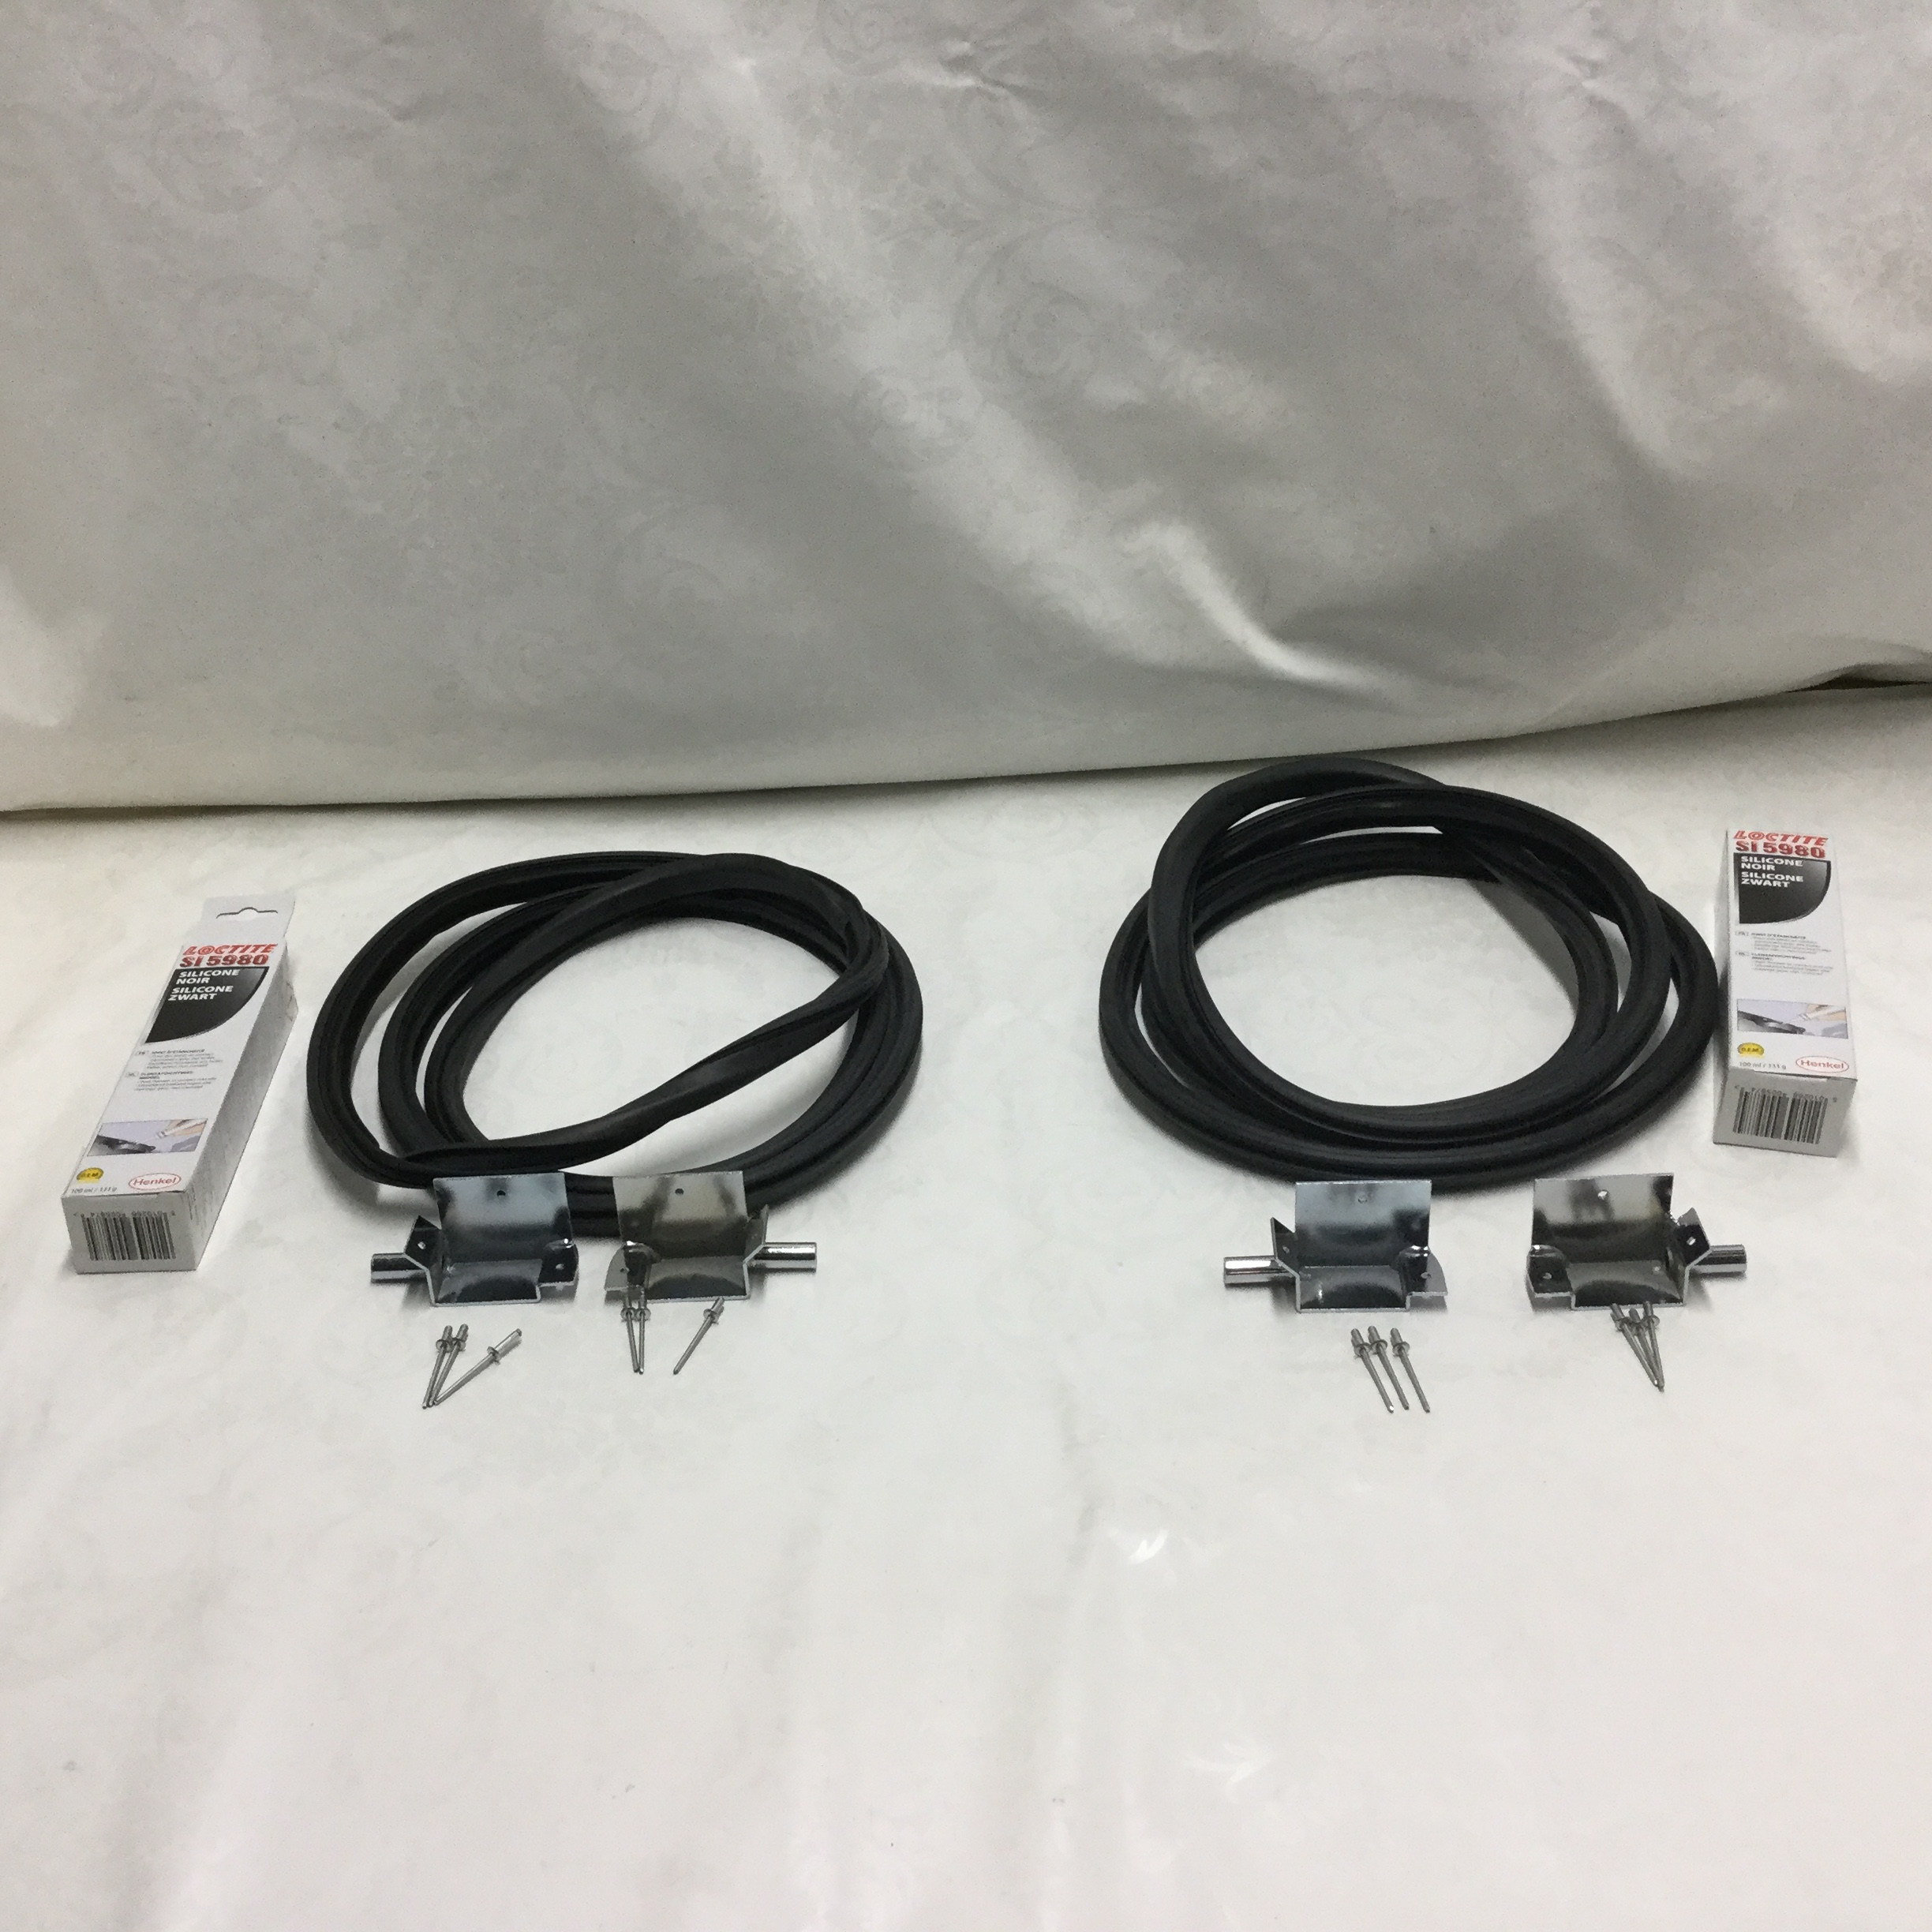 2 x DISCOVERY 2 SUNROOF DRAIN TUBE REPAIR KIT